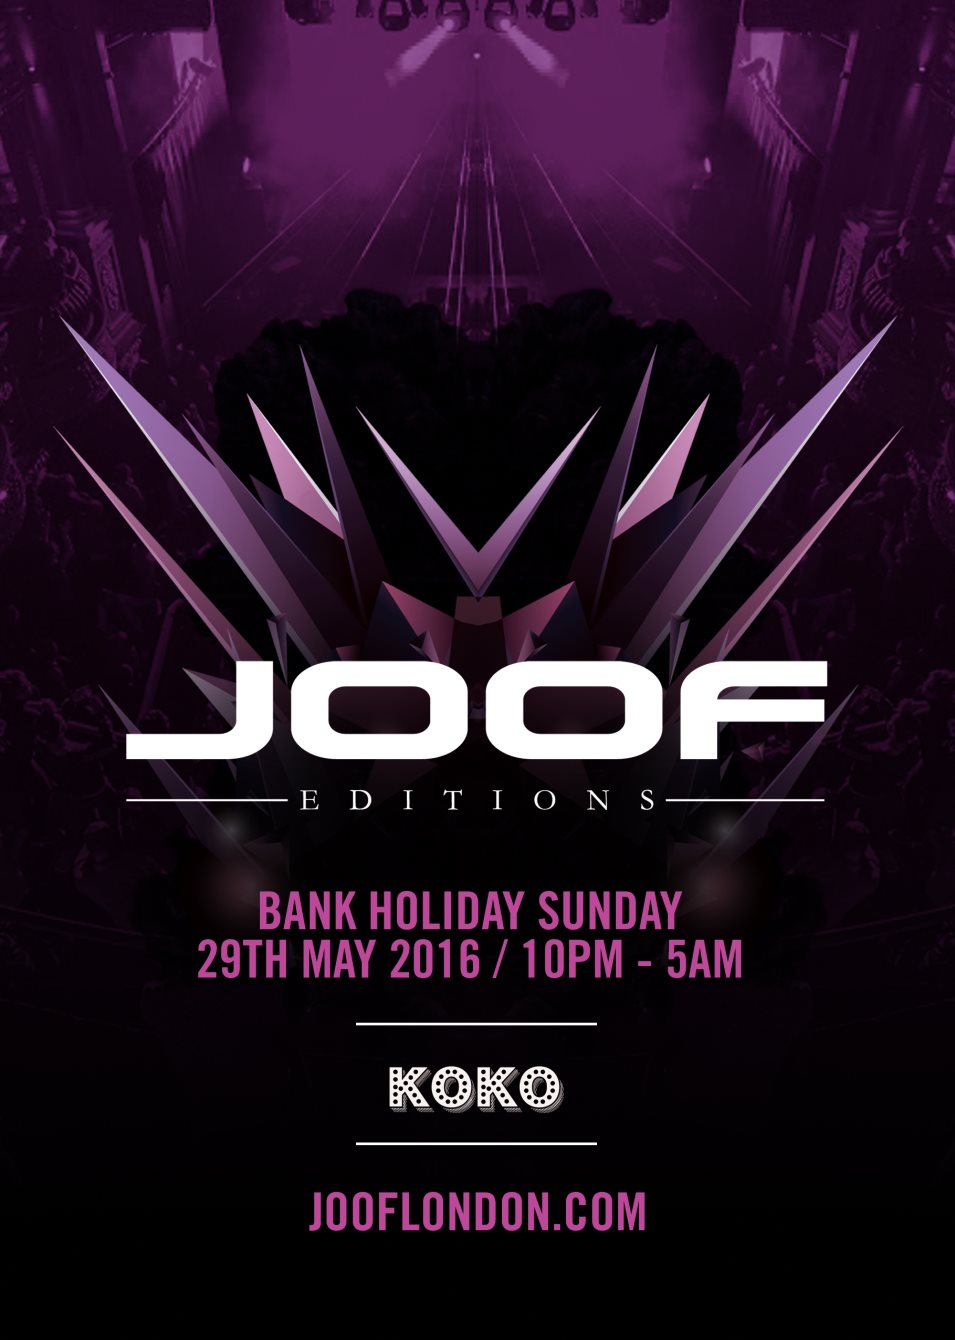 Joof Editions - Flyer front